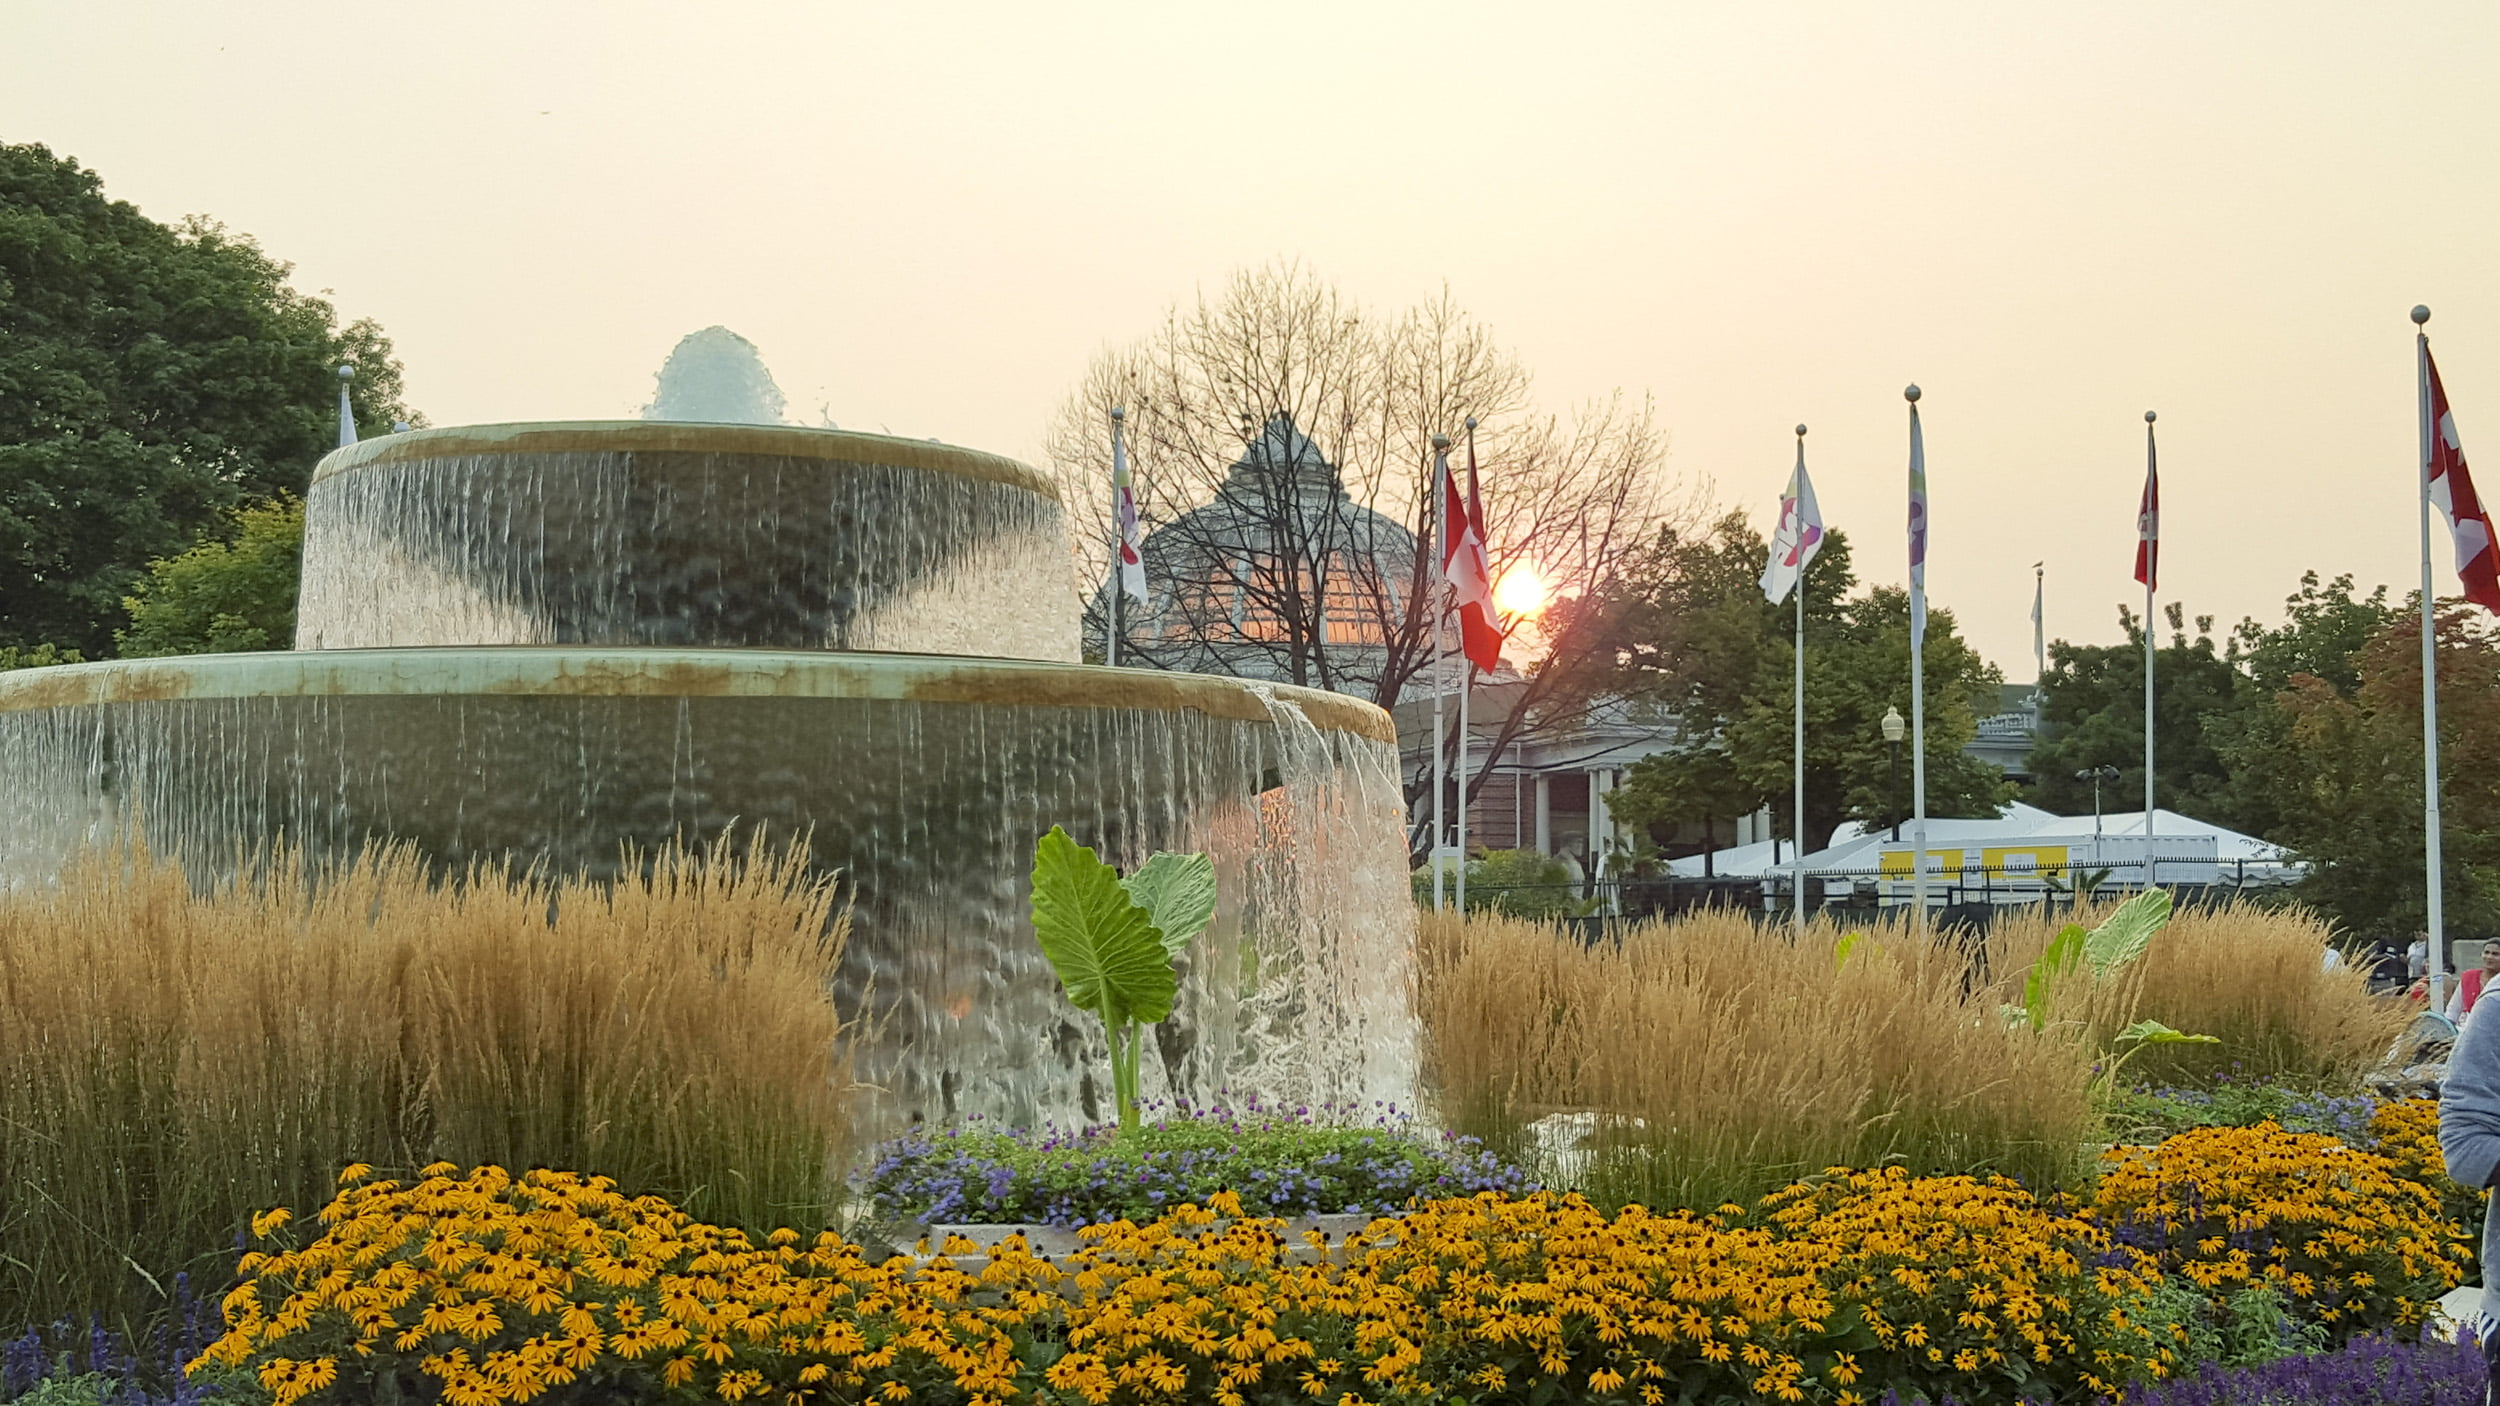 Canadian National Exhibition grounds